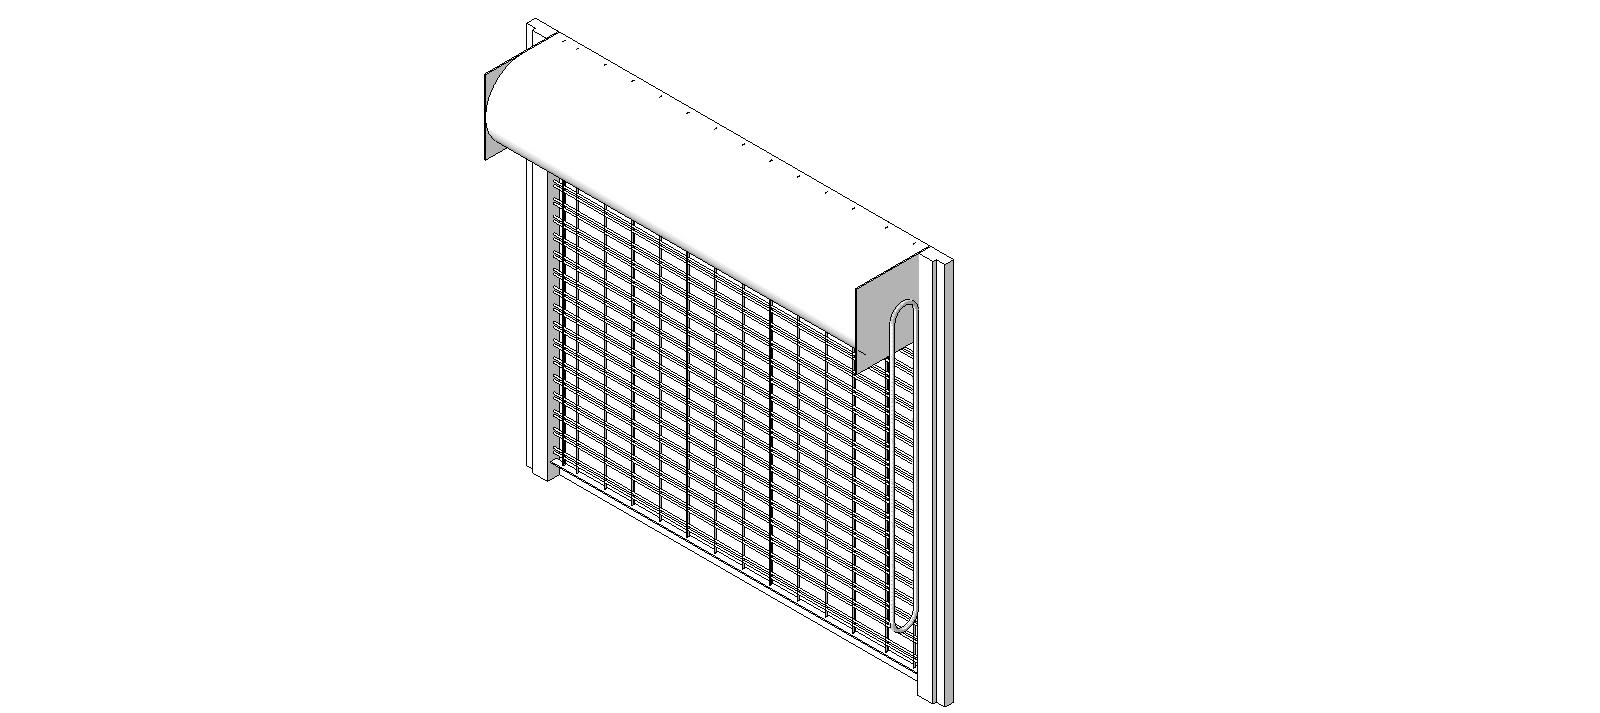 Overhead Door Corporation Coiling Doors And Grilles Bim